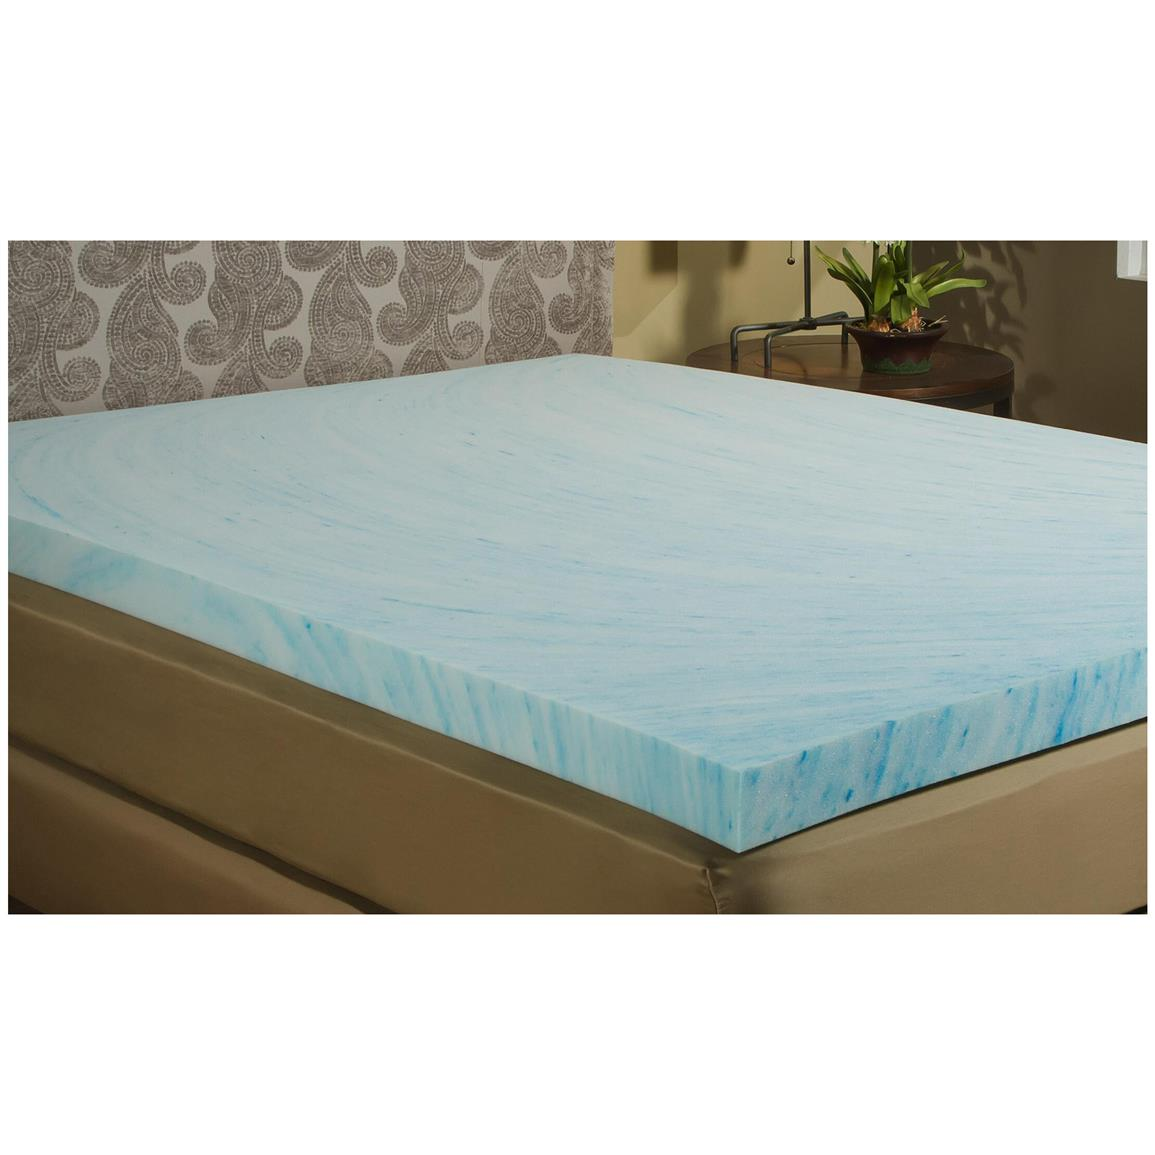 Buy Mattress Topper Toppers Deals Ebay Deals Ph